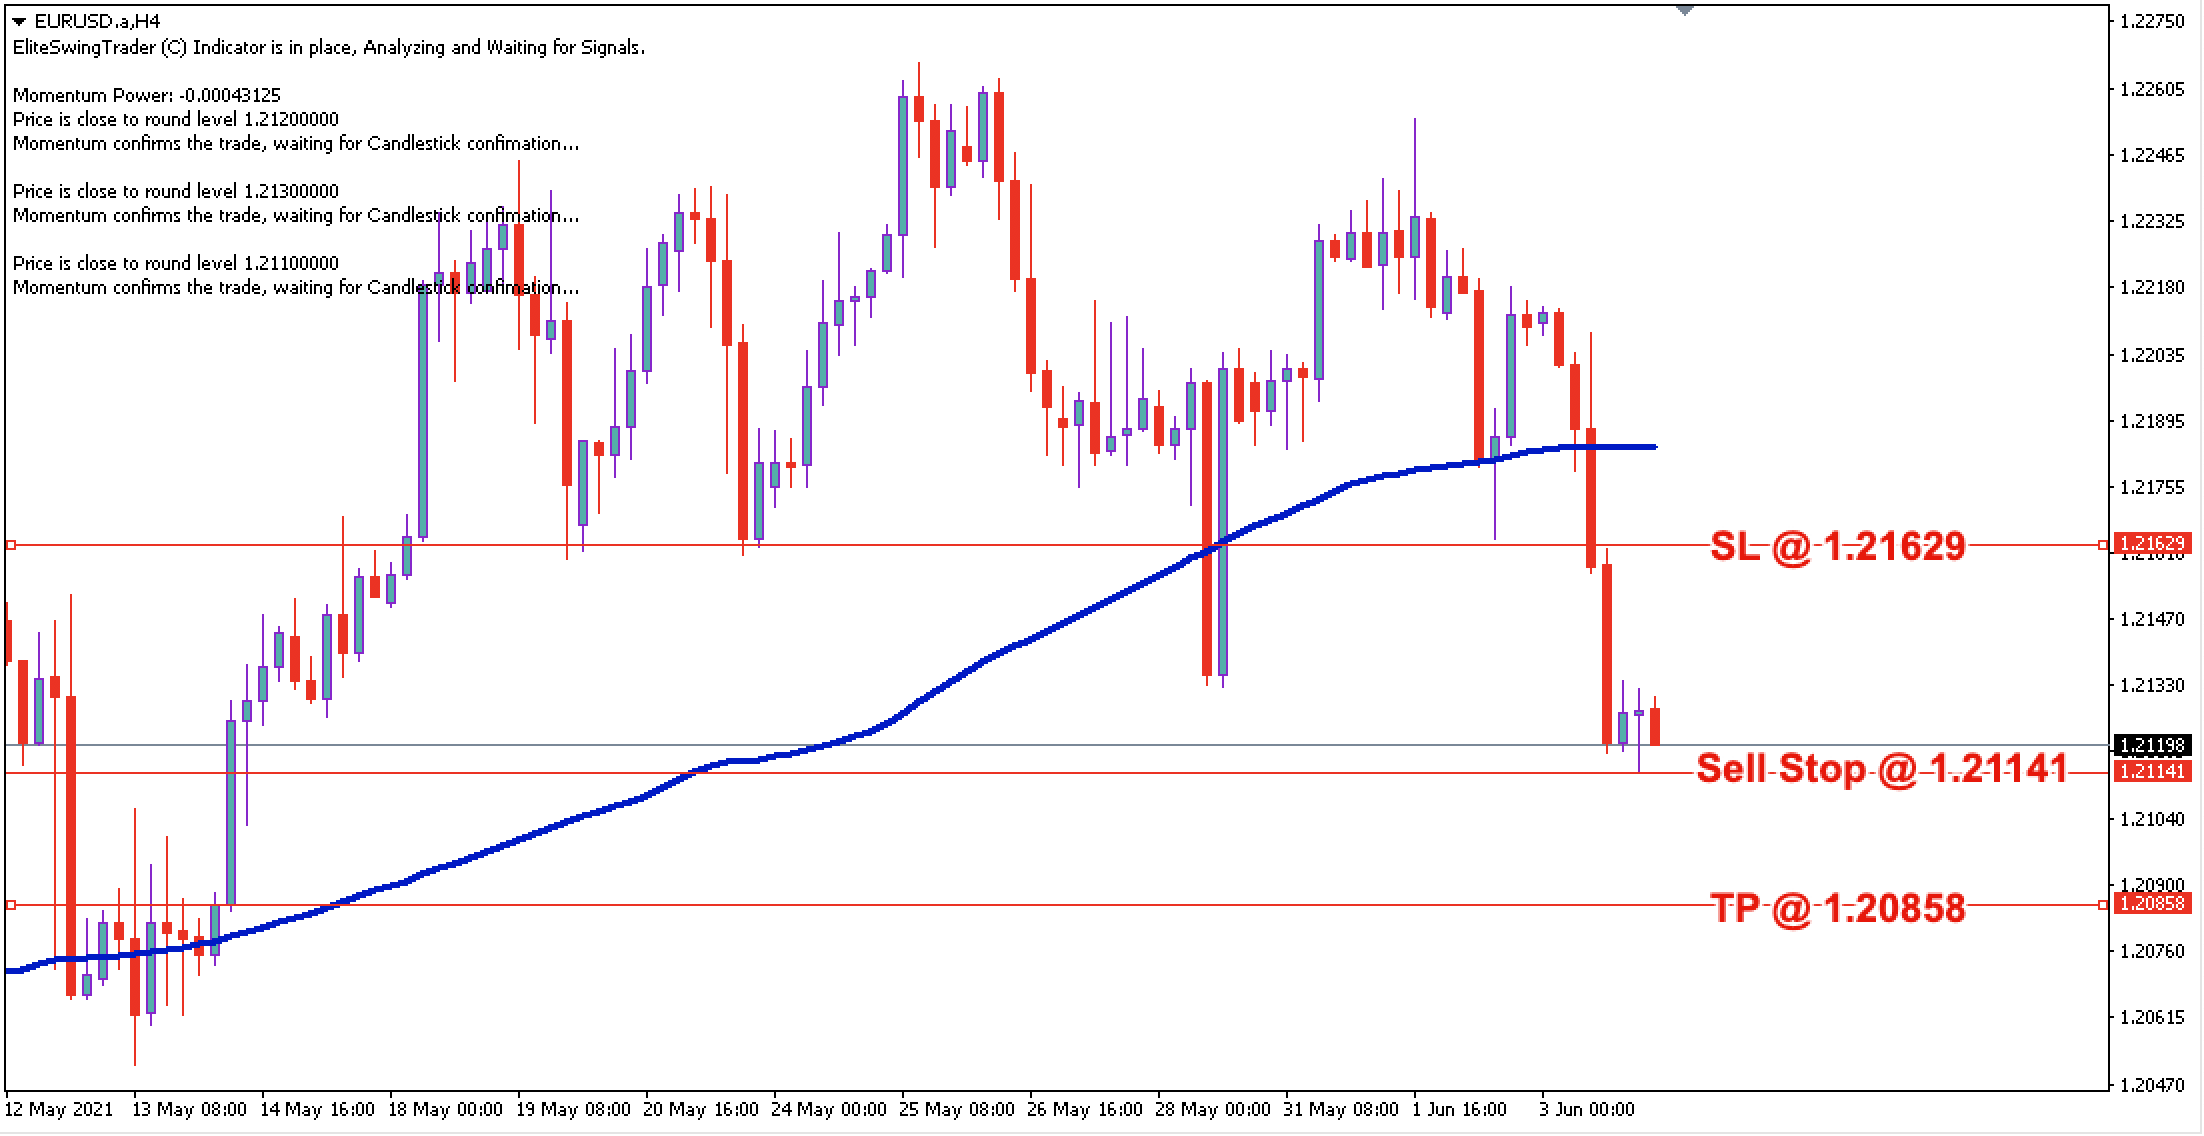 EUR/USD Daily Price Forecast – 4th June 2021